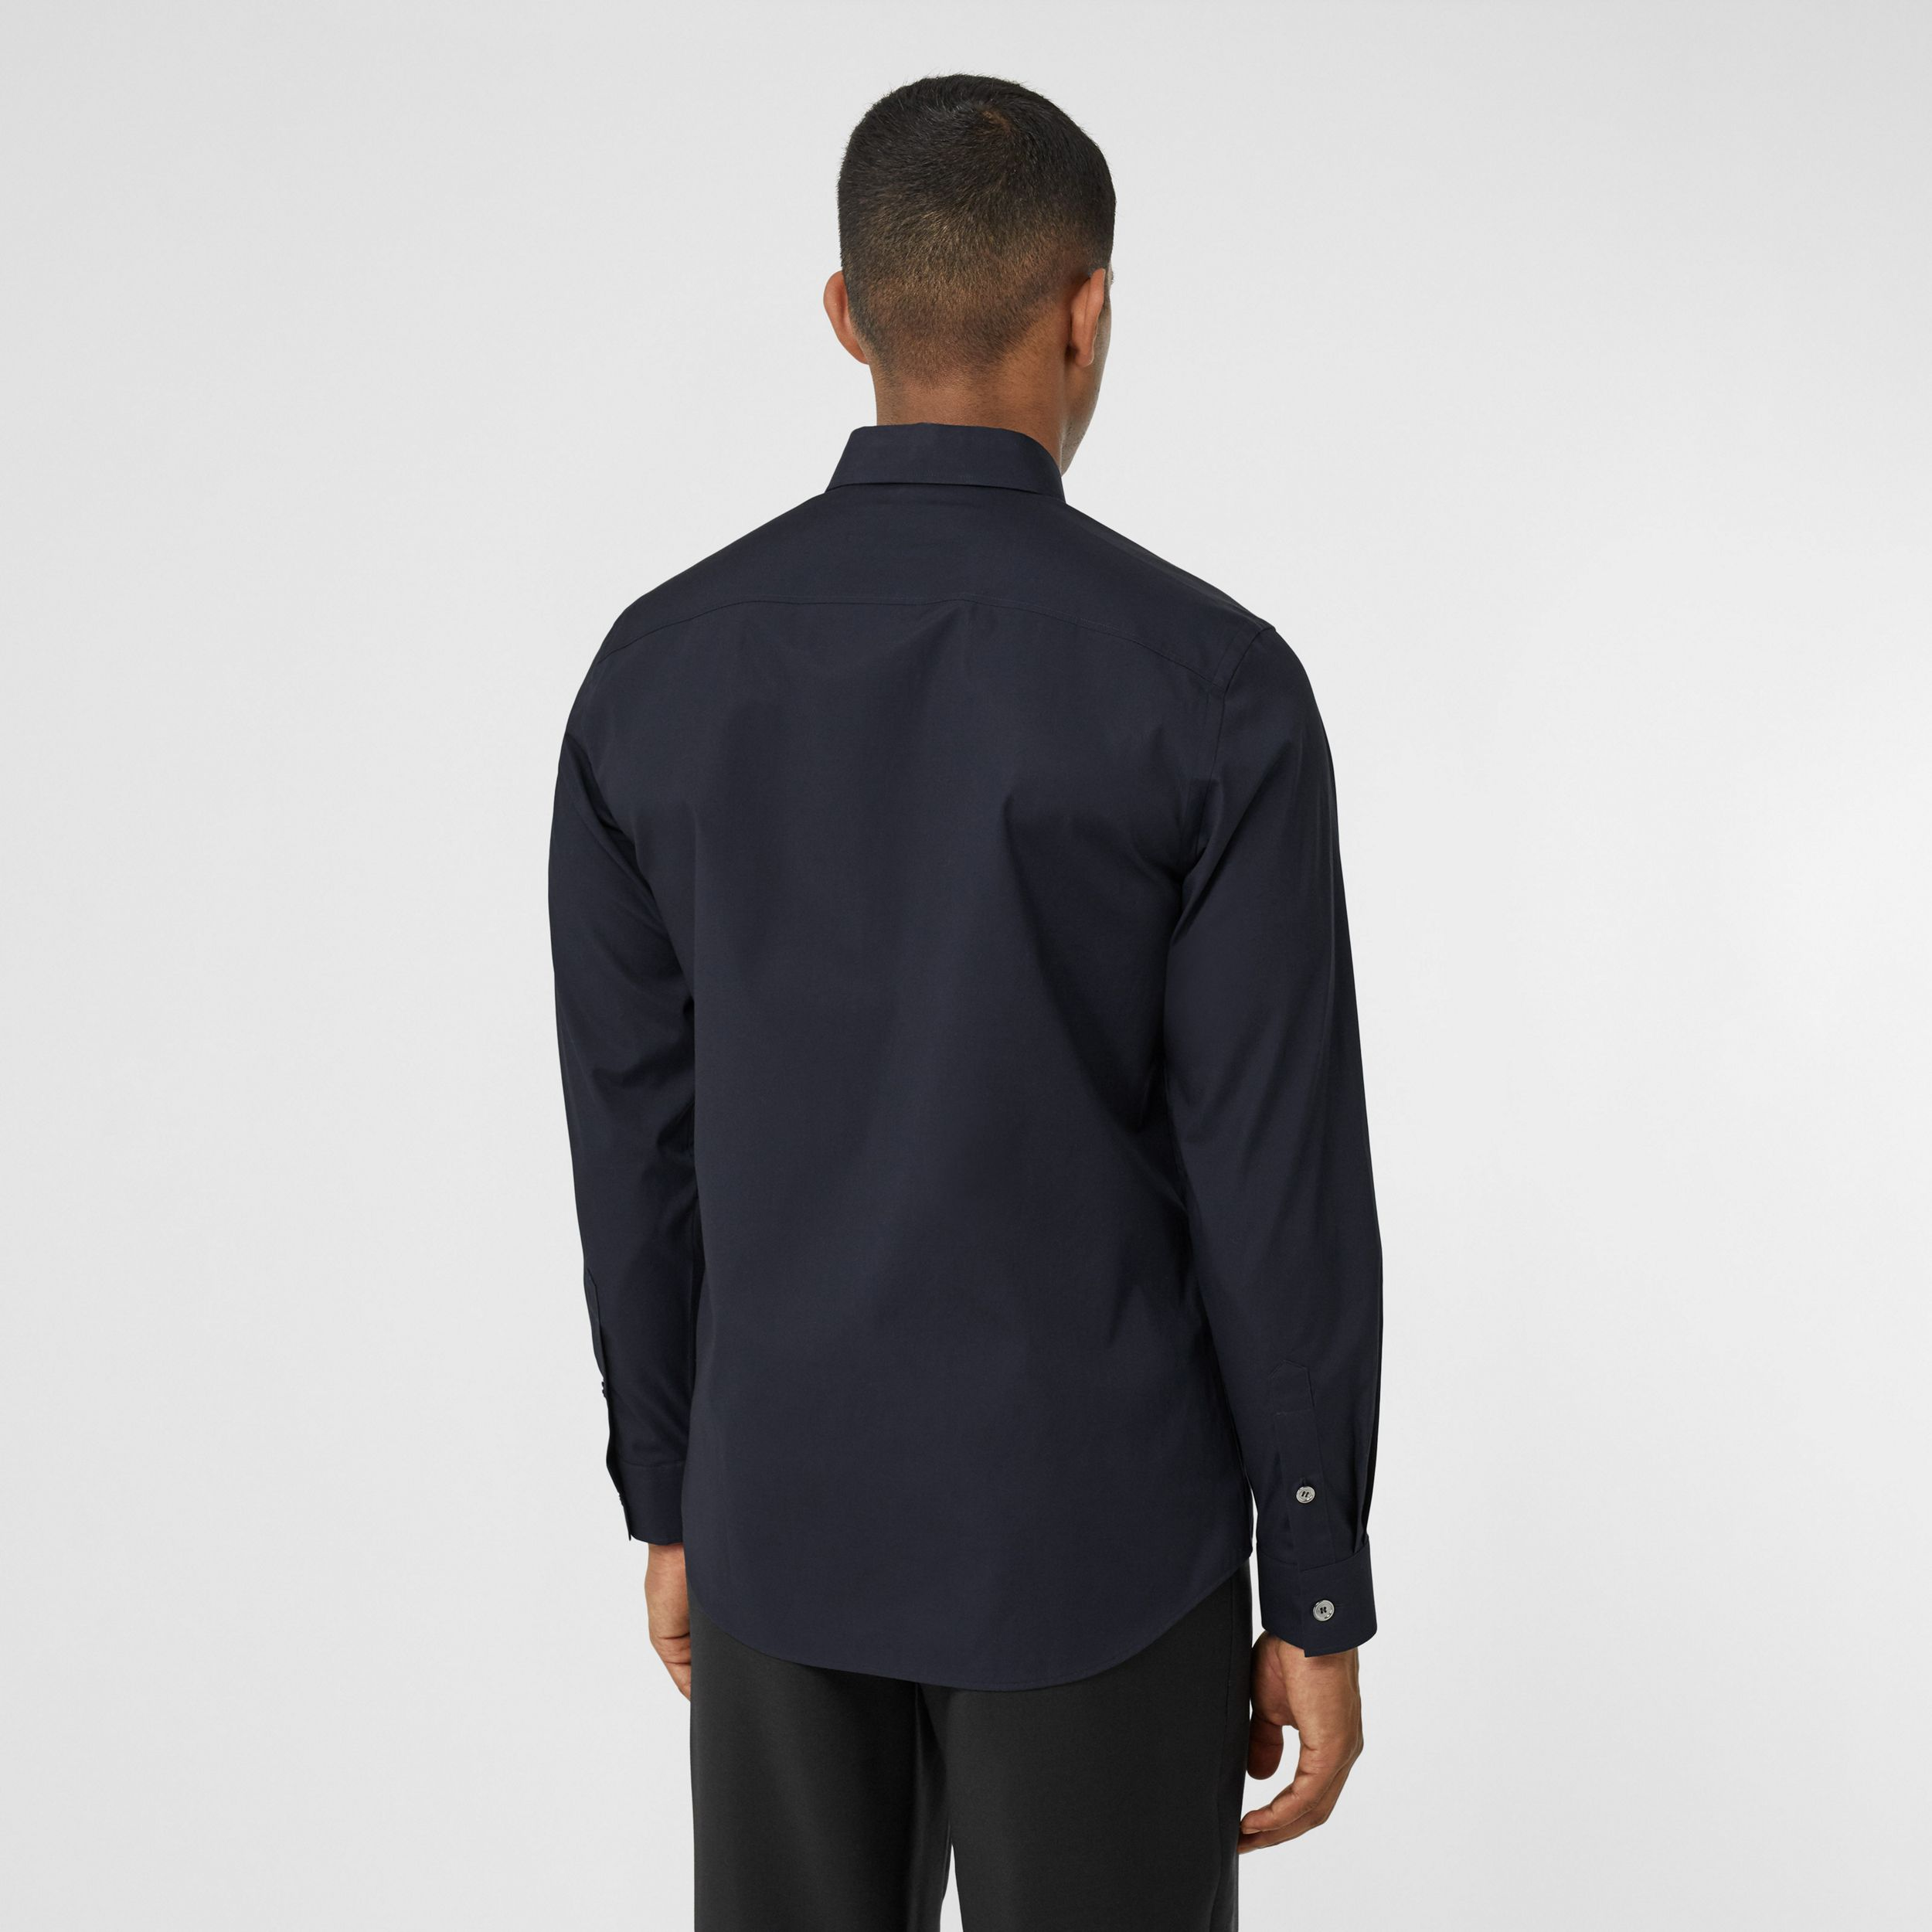 Monogram Motif Stretch Cotton Poplin Shirt in Navy - Men | Burberry Australia - 3